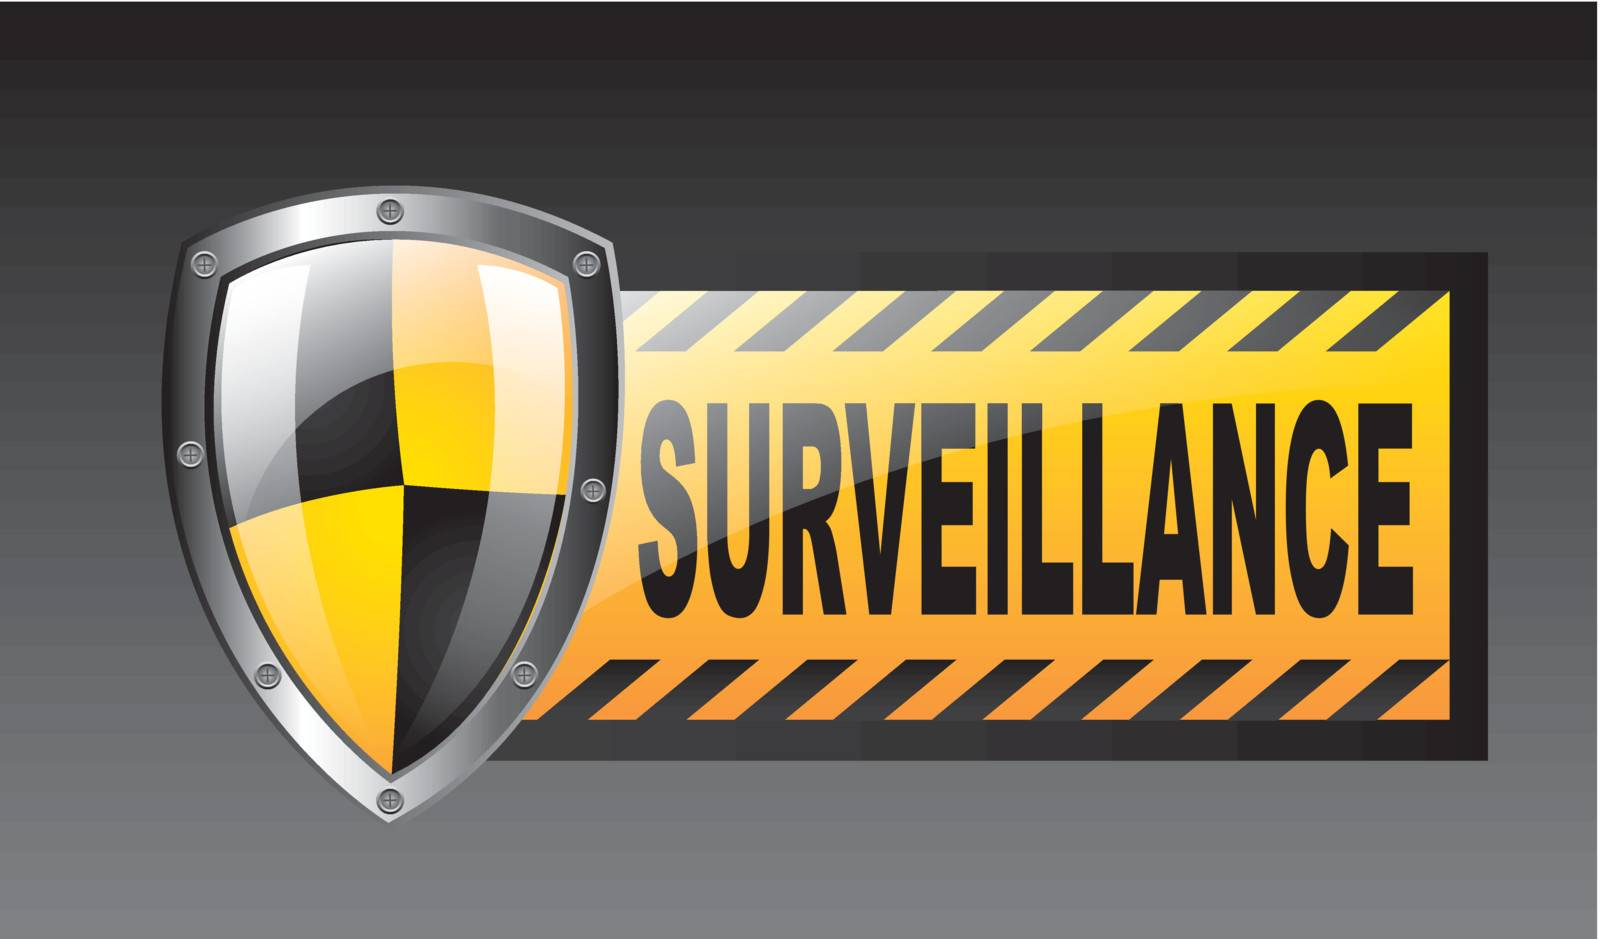 surveillance with protection shield over black background. vector